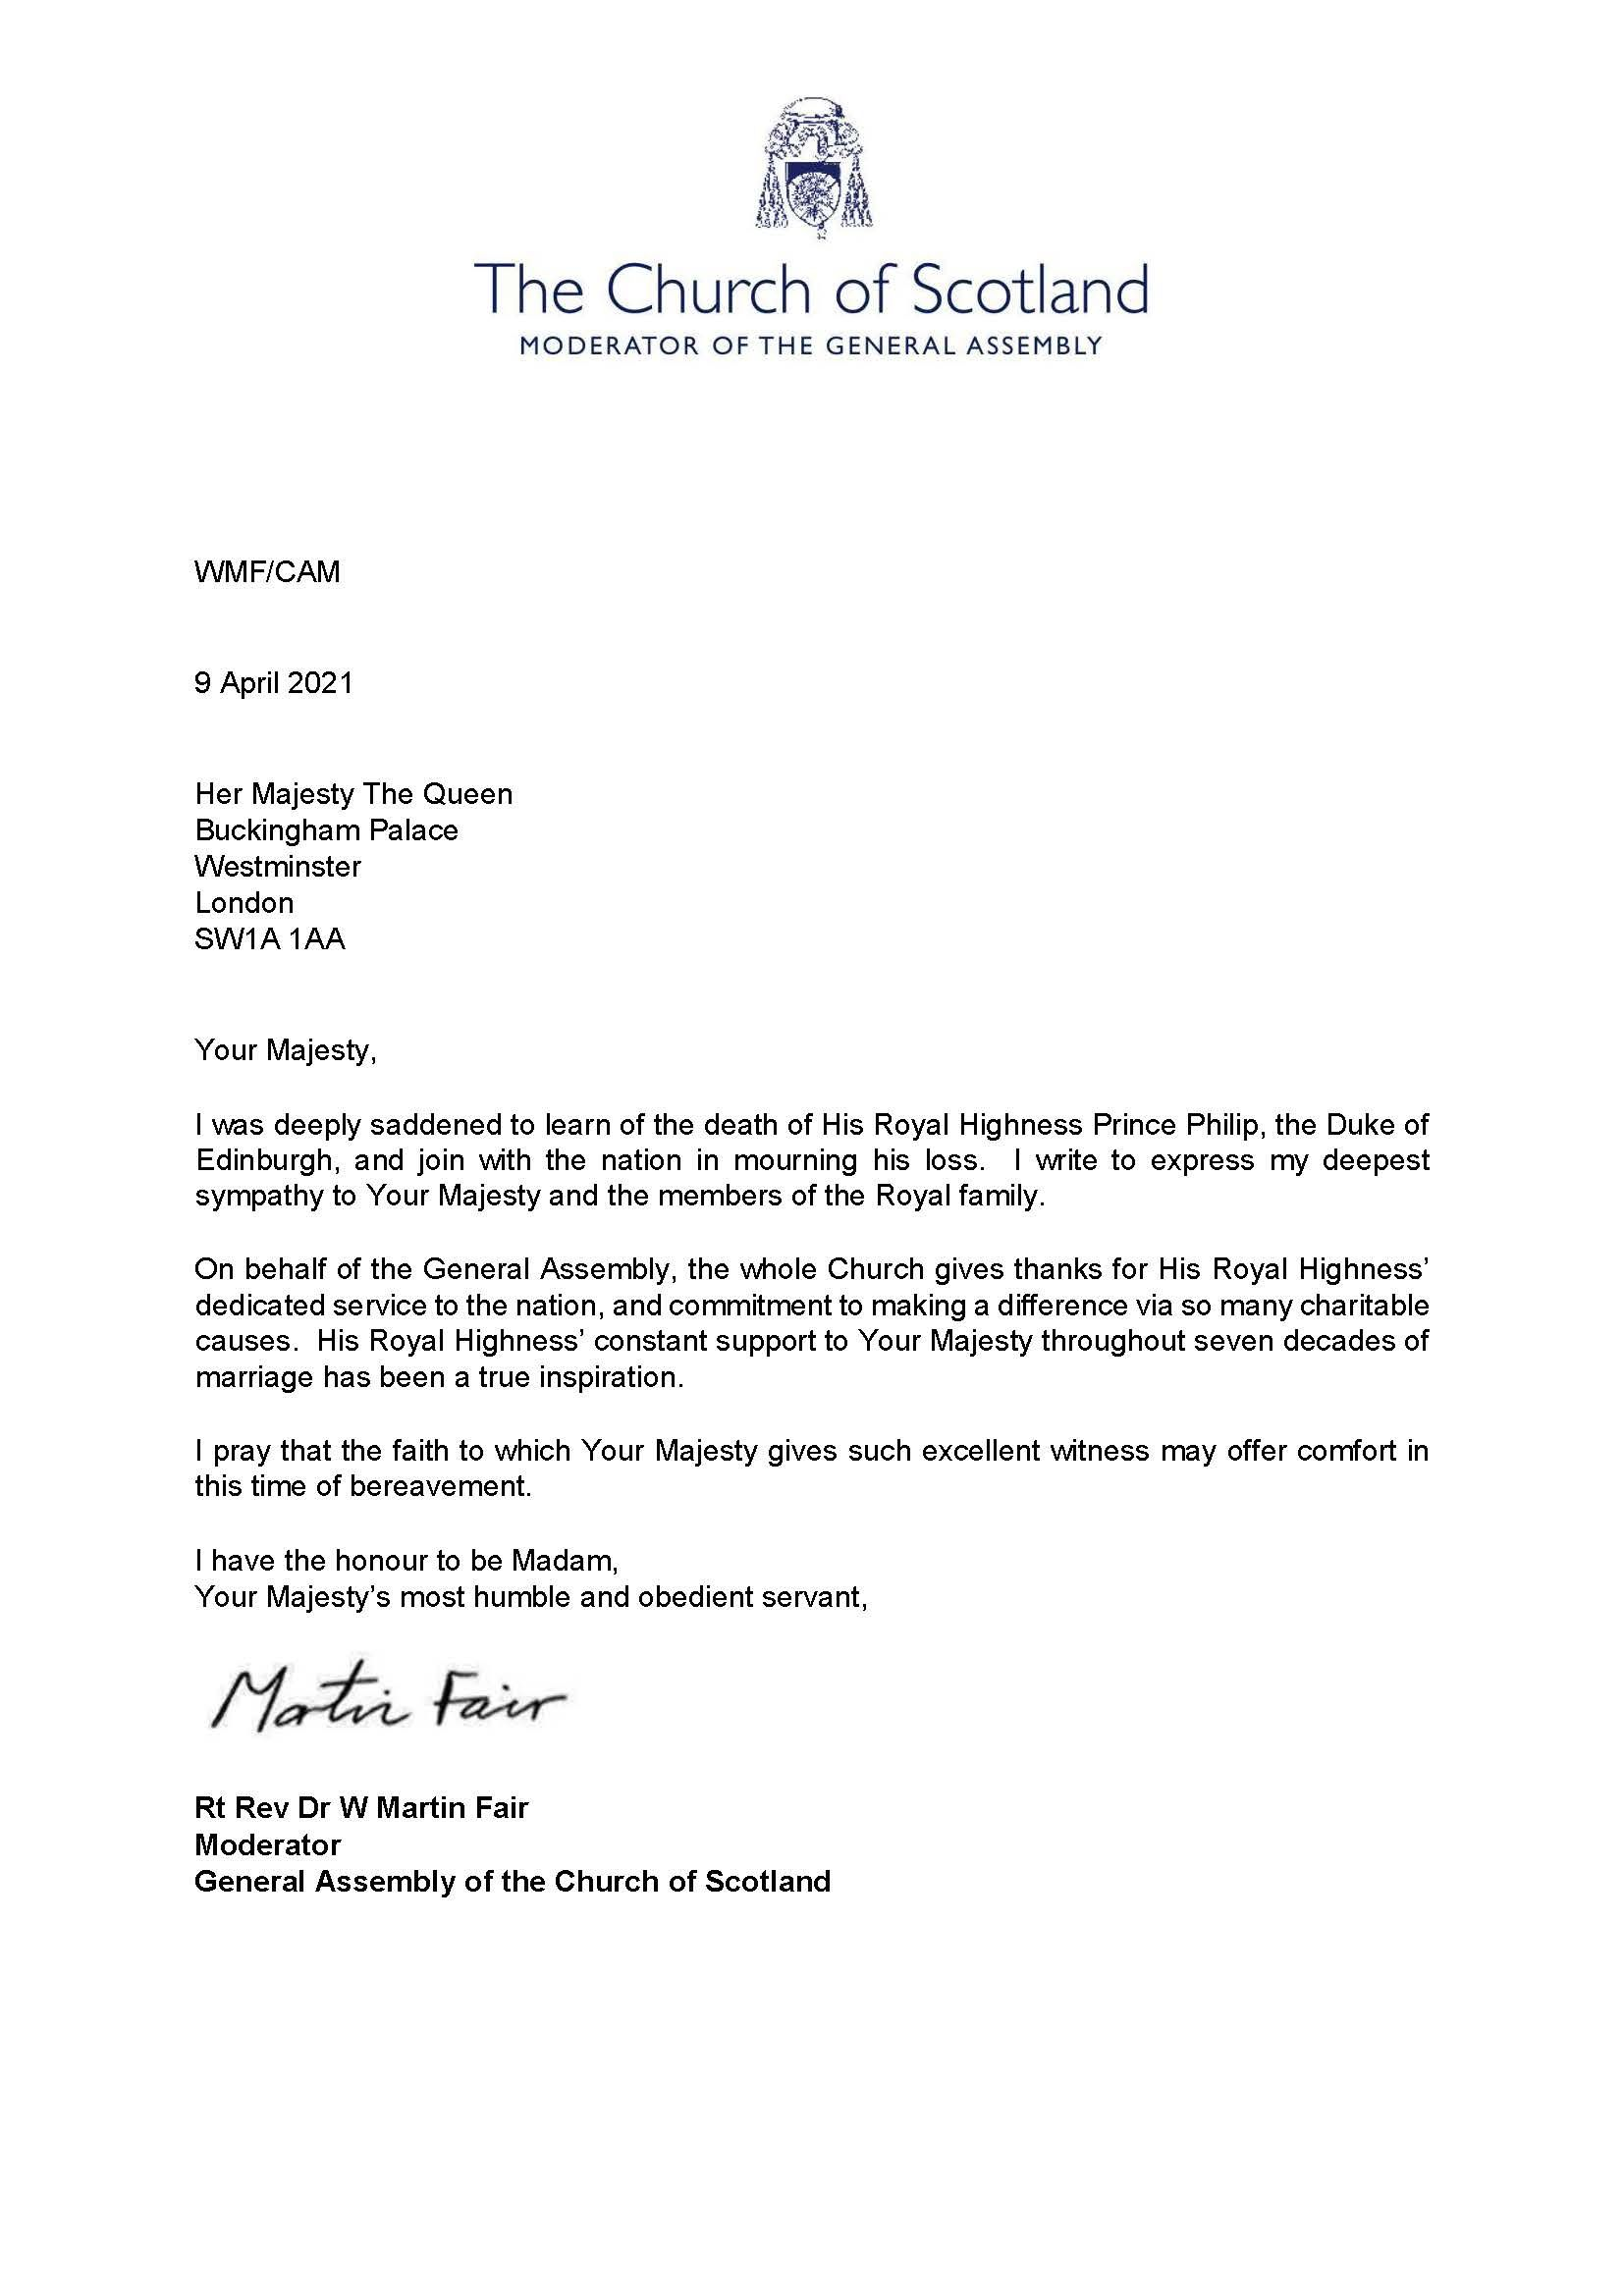 Letter to HM The Queen